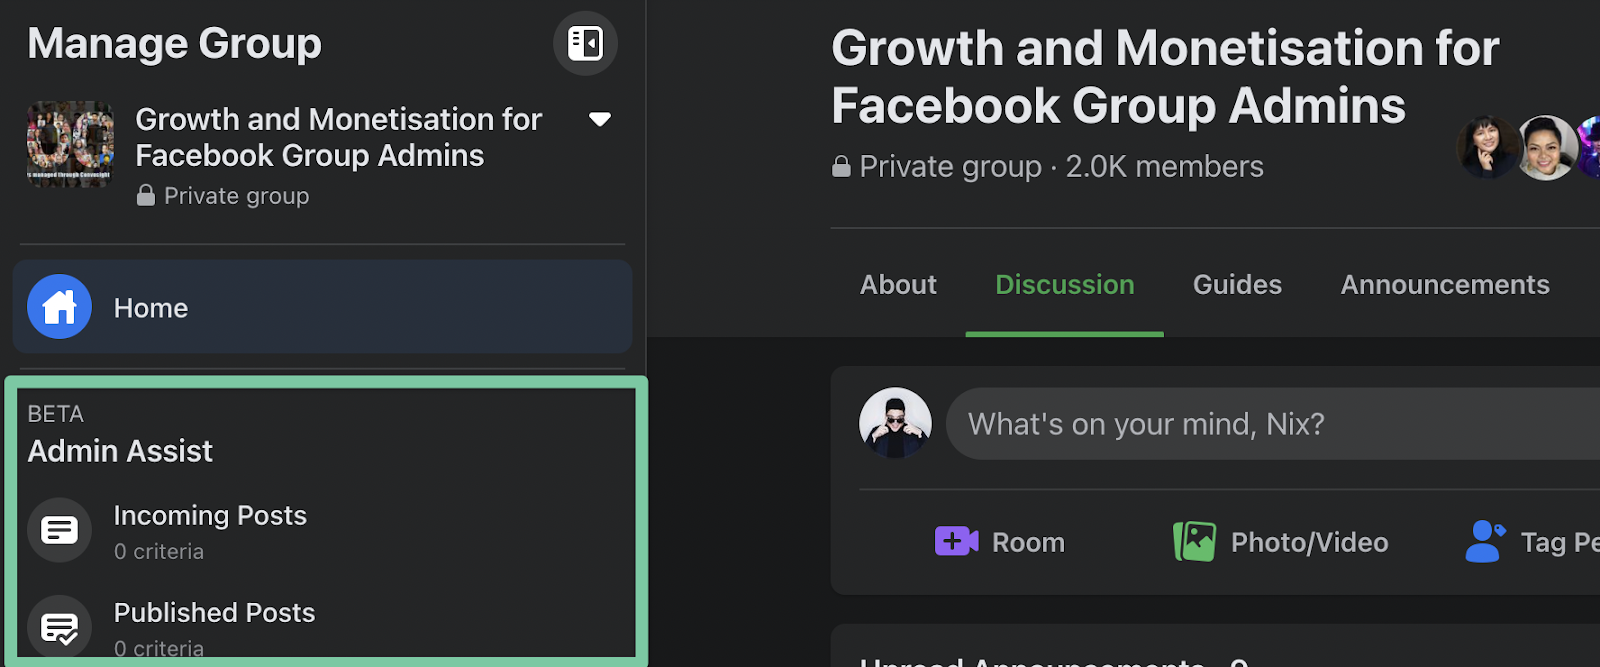 Admin Assist for Facebook Group